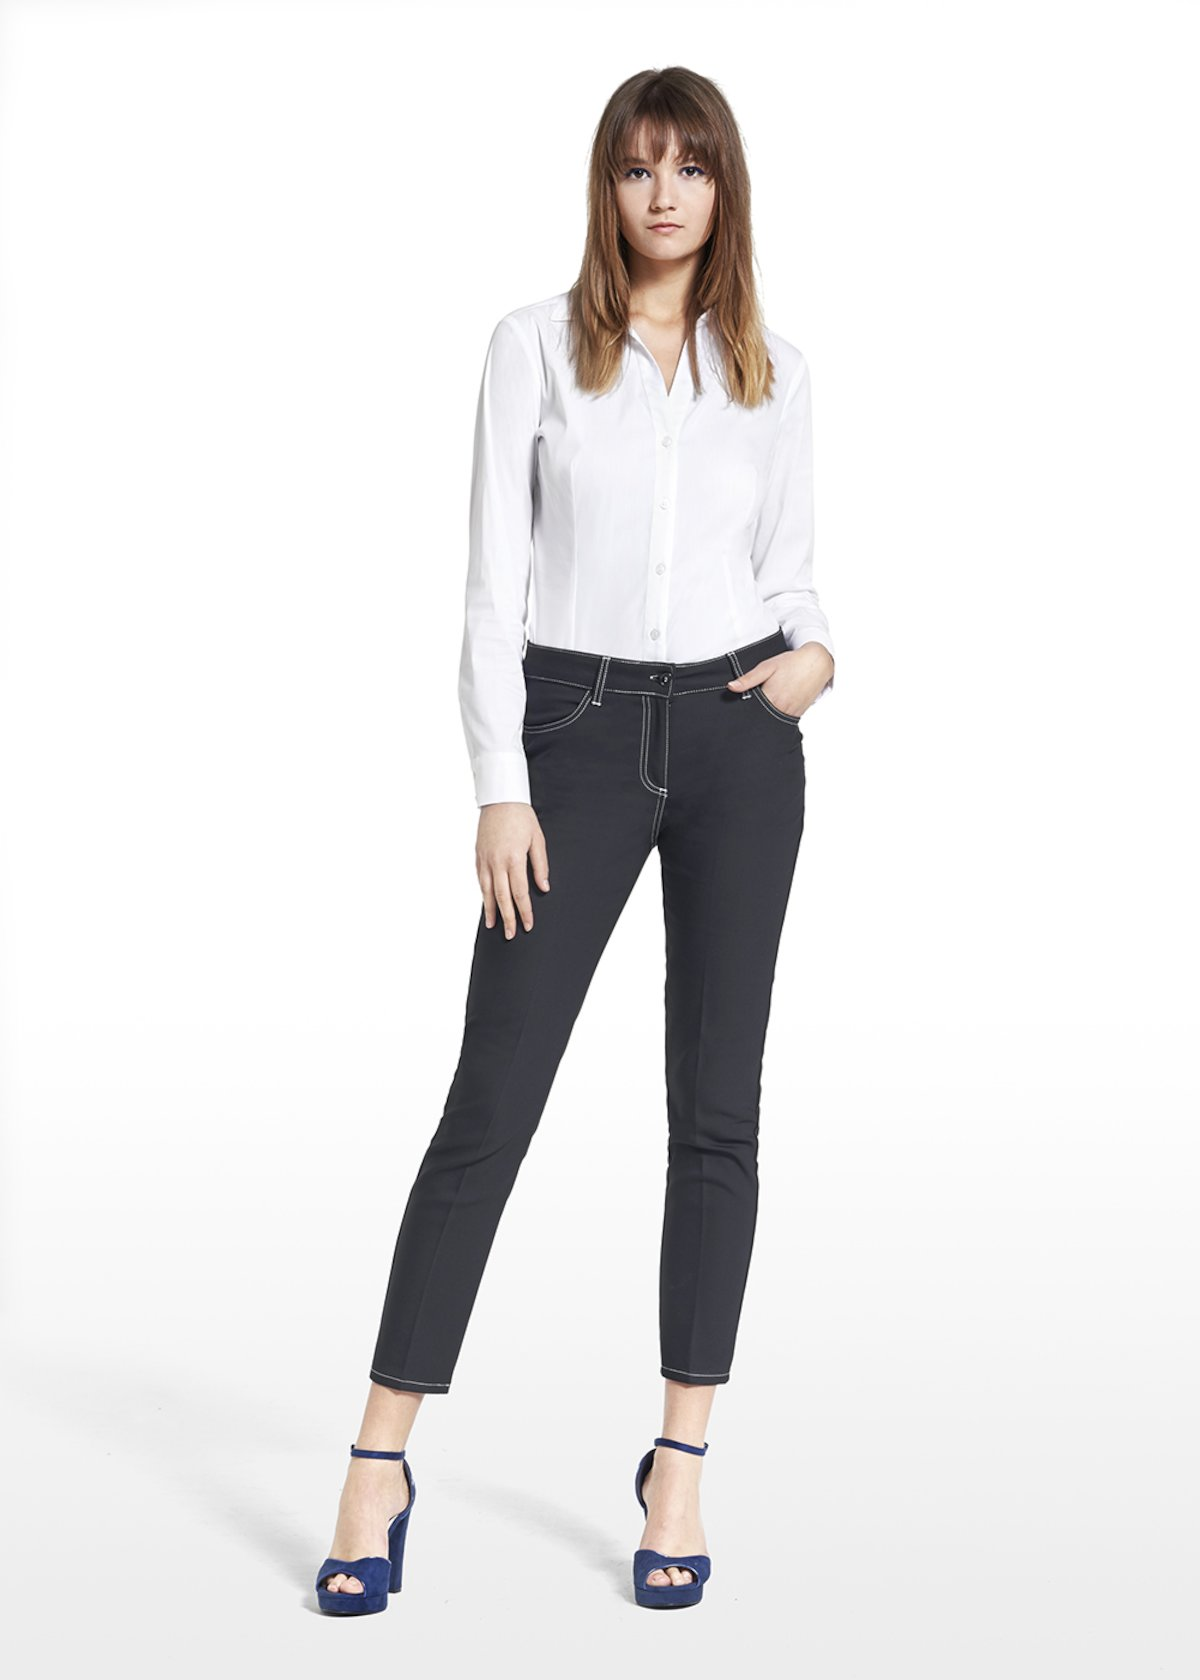 5-pocket pants Kate in technical fabric - Black - Woman - Category image